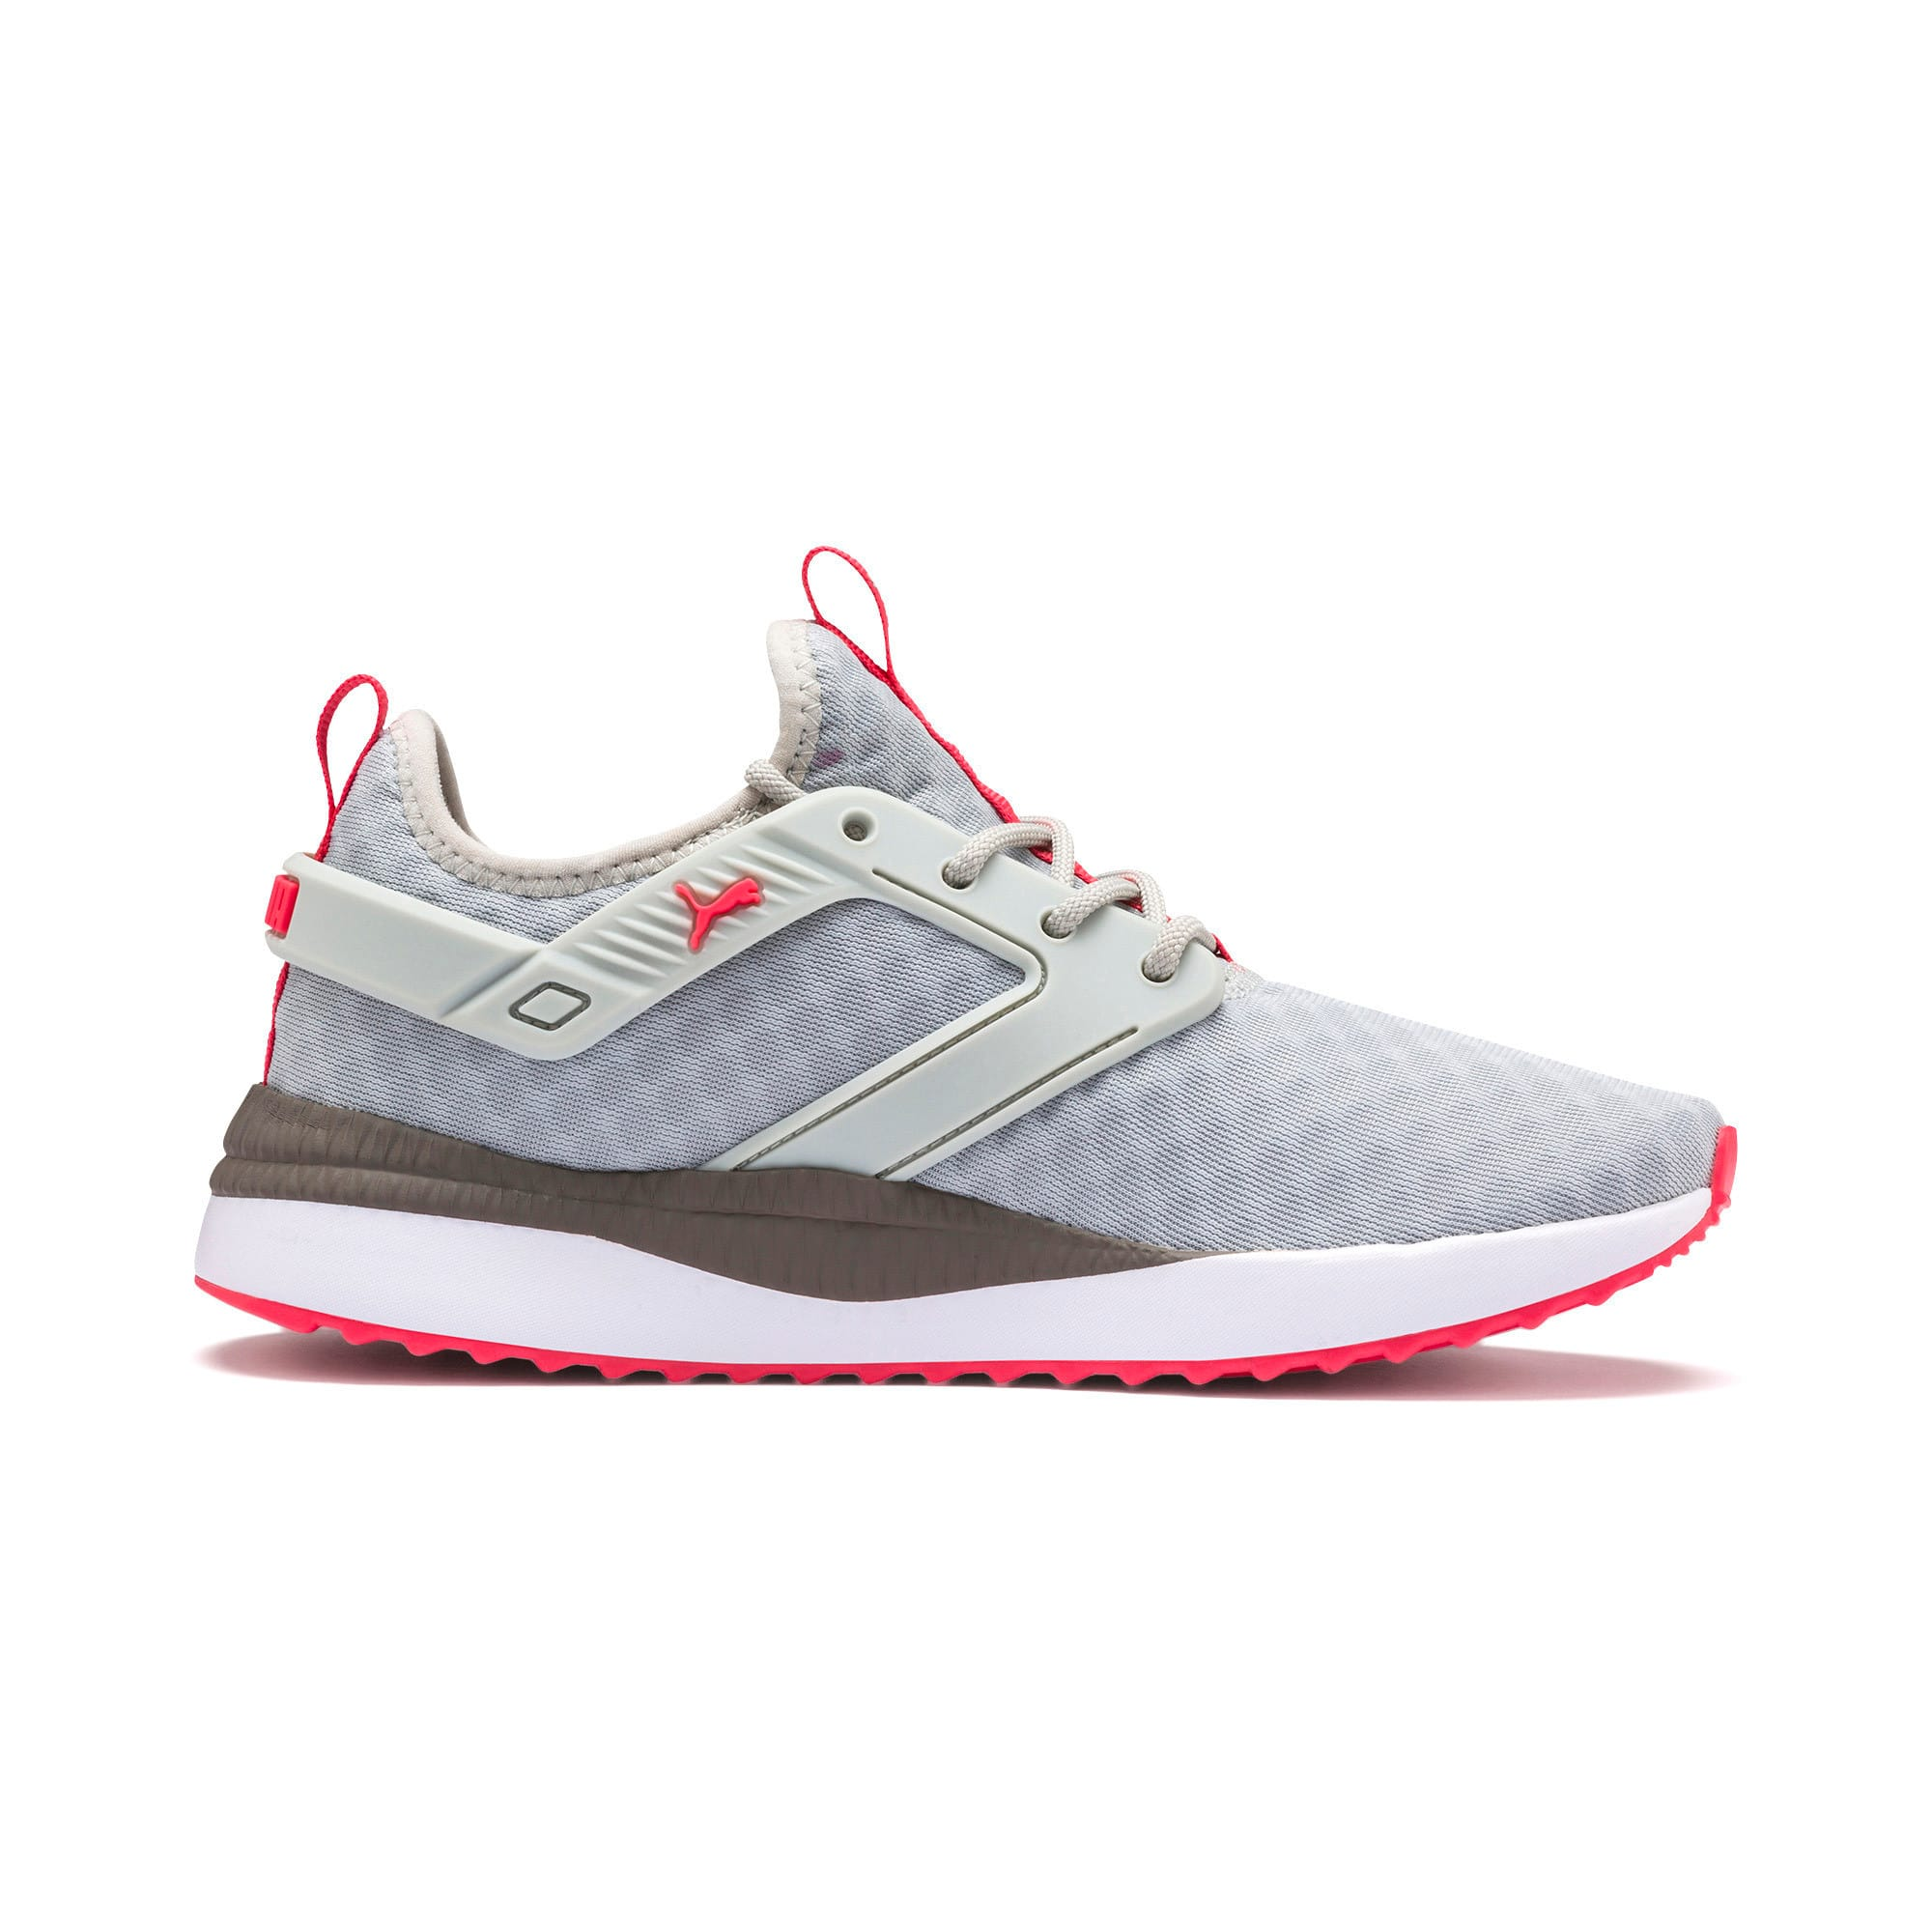 Thumbnail 6 of Pacer Next Excel Running Shoes, Gray Violet-Calypso Coral, medium